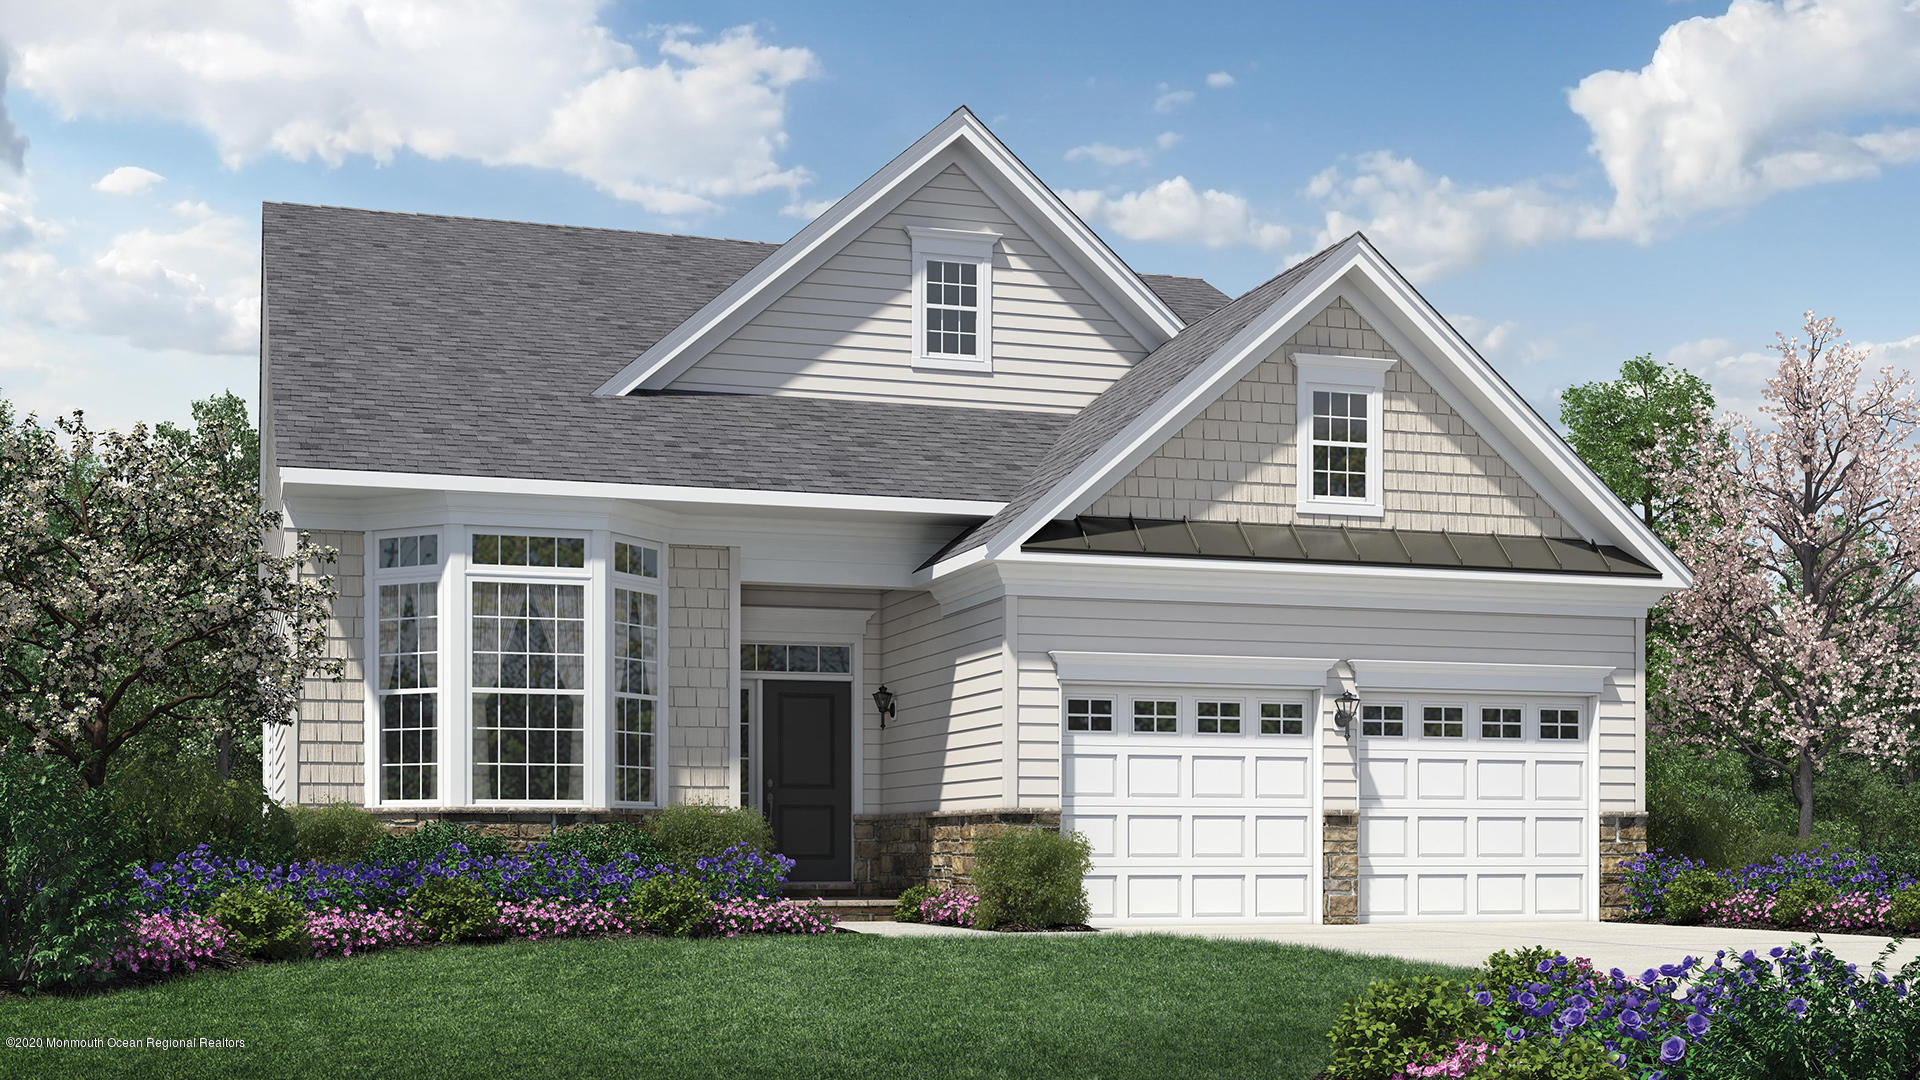 Houghton Eastern Shore Quick Delivery Home, new construction, February 2021 delivery. Finish selection is complete and included in this exceptional price.The roomiest single story floor plan offered is just under 2,000 square feet of luxury living. There is a large kitchen which is open to the expanded Family room with cozy gas fireplace. The kitchen boasts a large island for seating and storage and is perfect for family gatherings and entertaining. This home sits on a very desirable interior site that backs up to open space leaving neighbors far off in the distance. The sunlit Study ILO LR makes for a good size home office with walk-out bay window. This home is finished off with a paver front walk, expanded garage with stairs to storage and more!